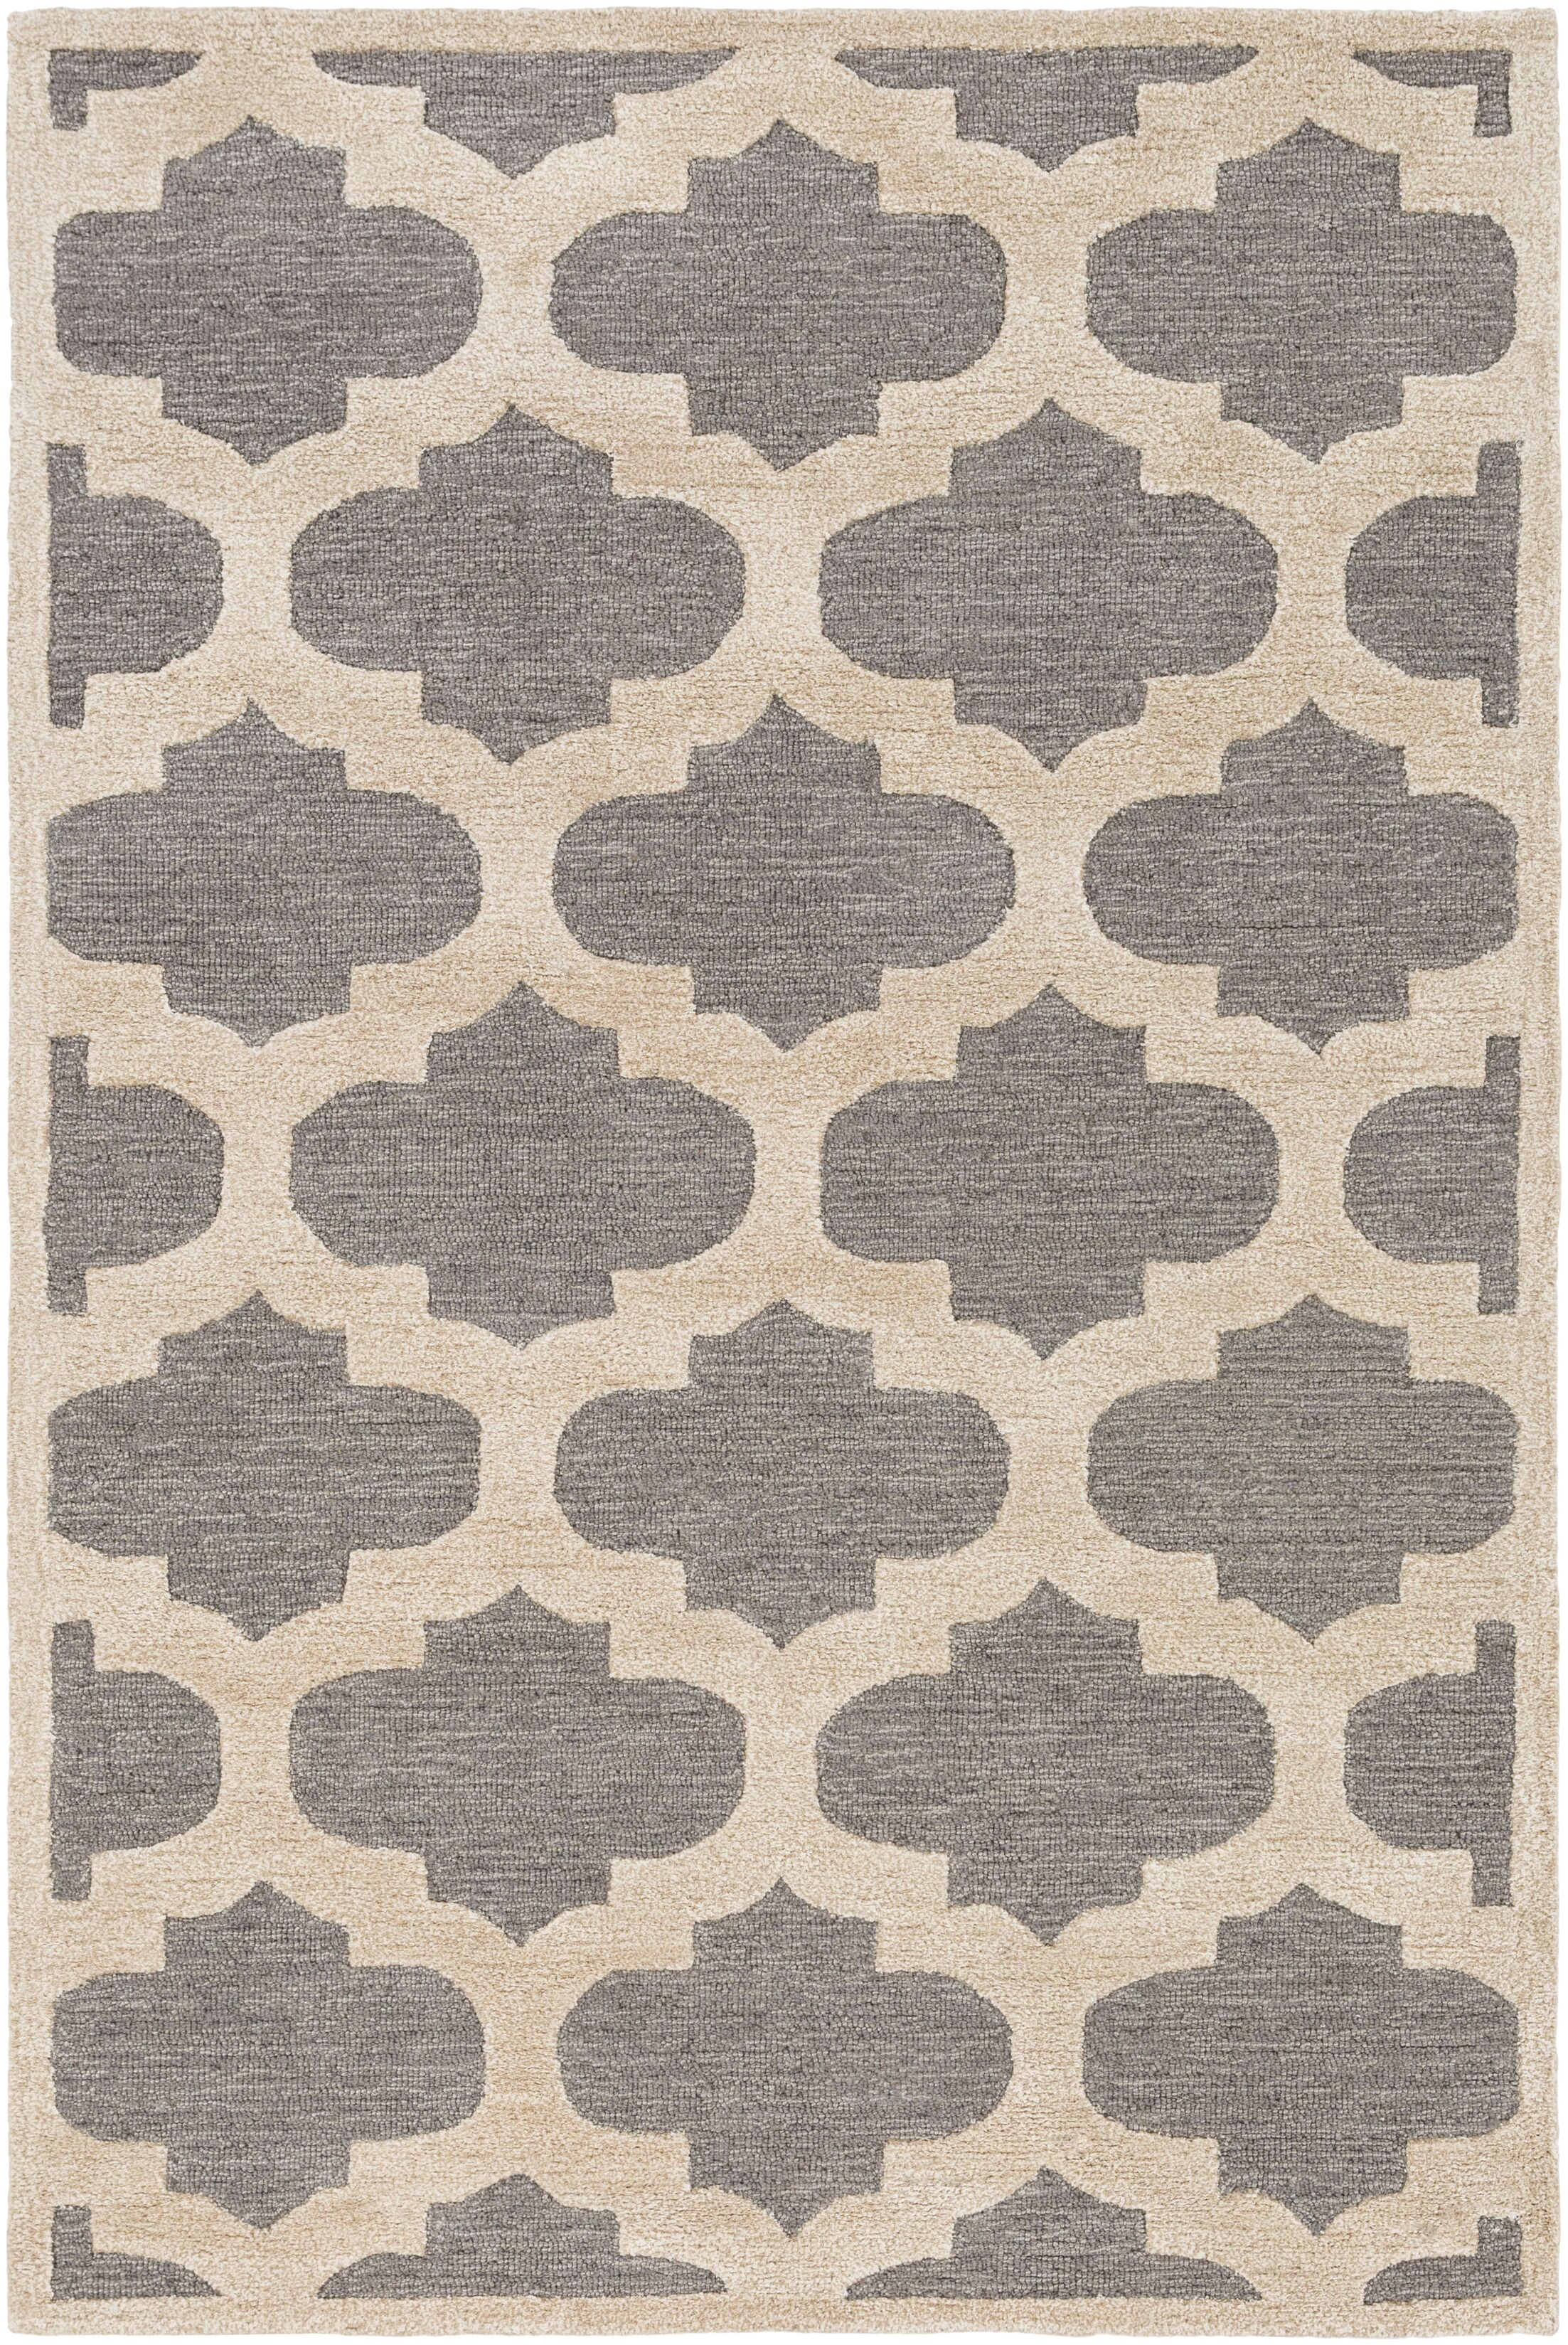 Boise Hand-Tufted Gray Area Rug Rug Size: Rectangle 5' x 7'6